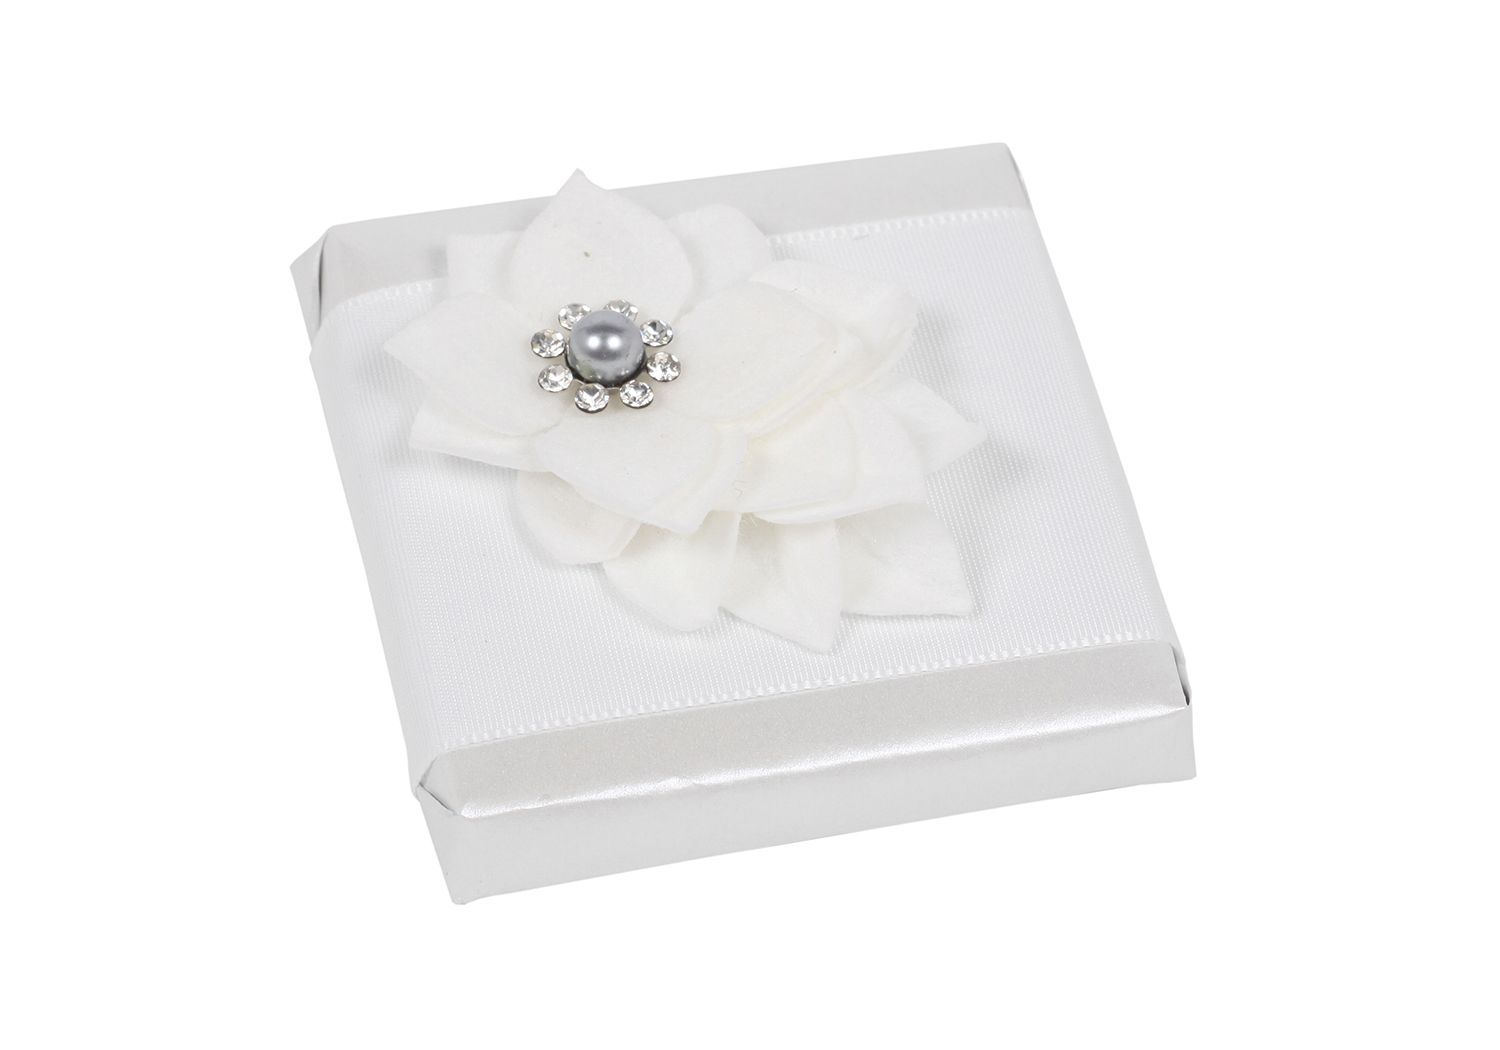 Patchi White Pearl Chocolate favor (large) http://patchi.us/wedding ...